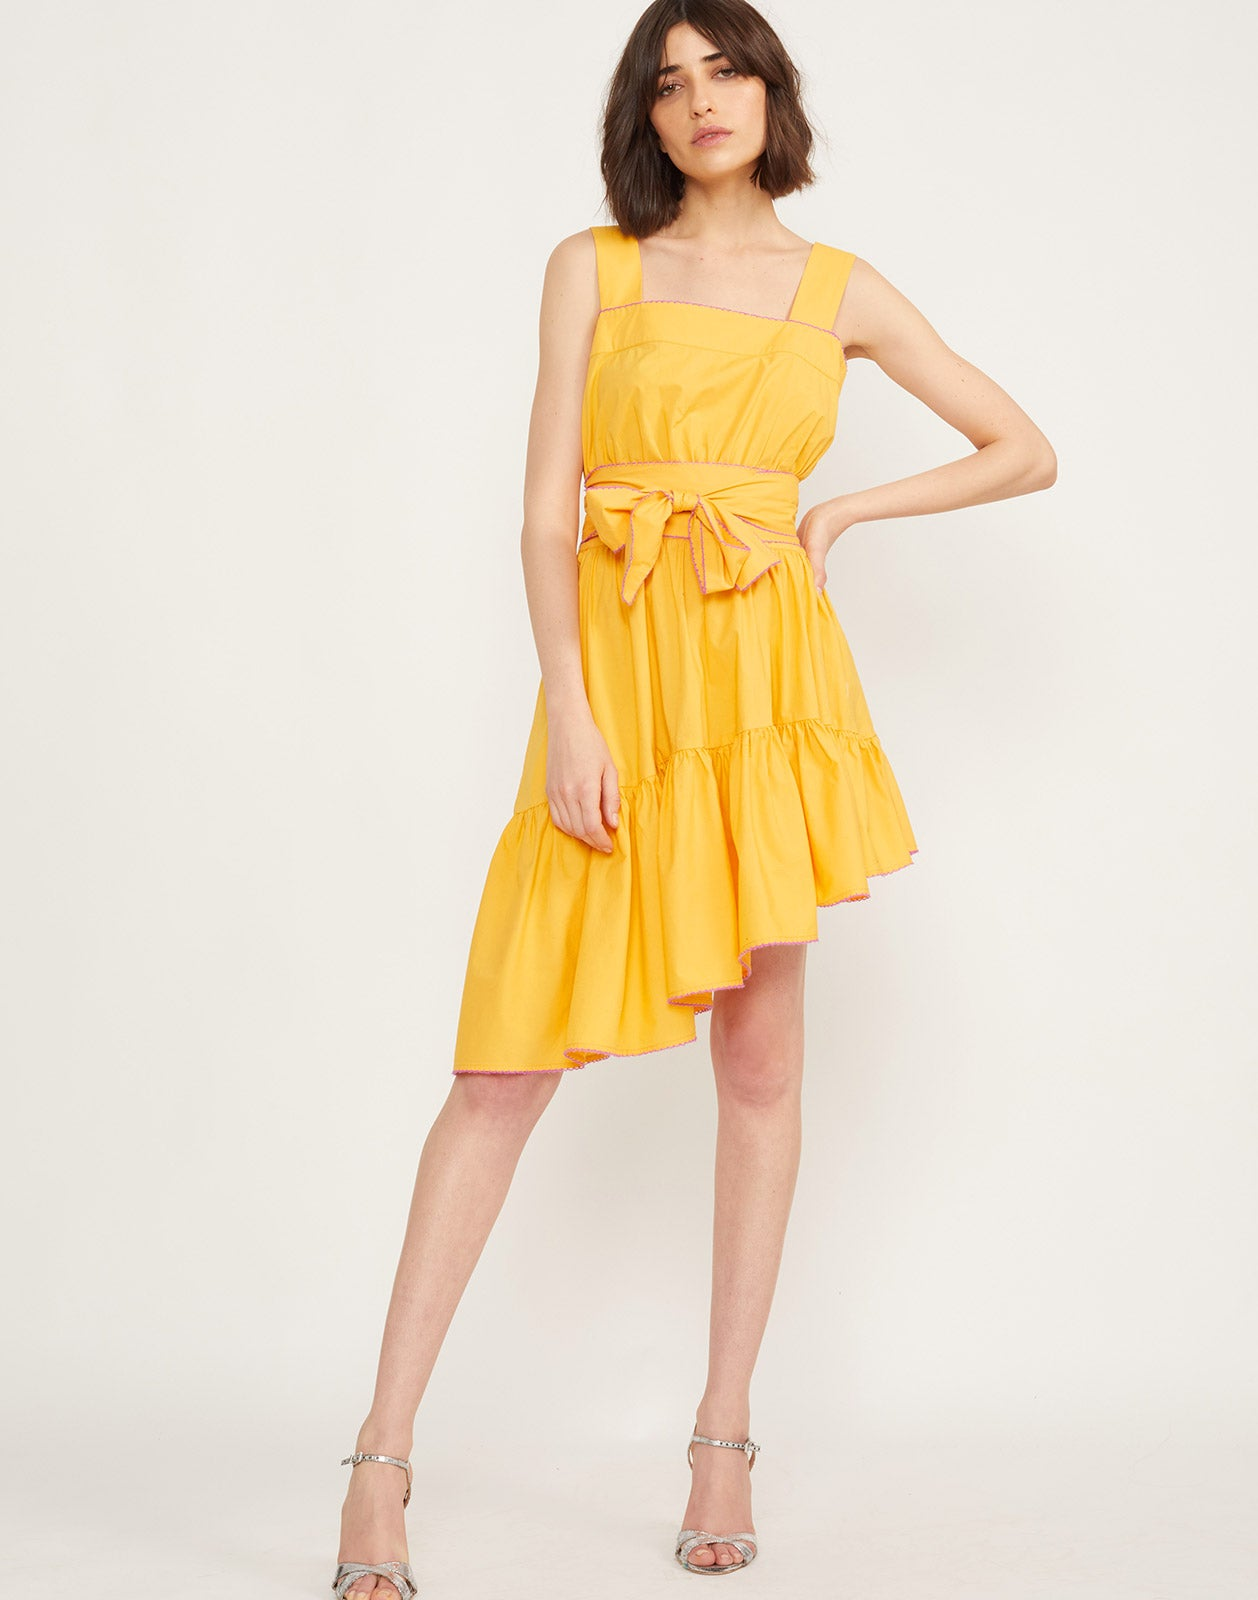 Full front view of the Dahlia Sundress